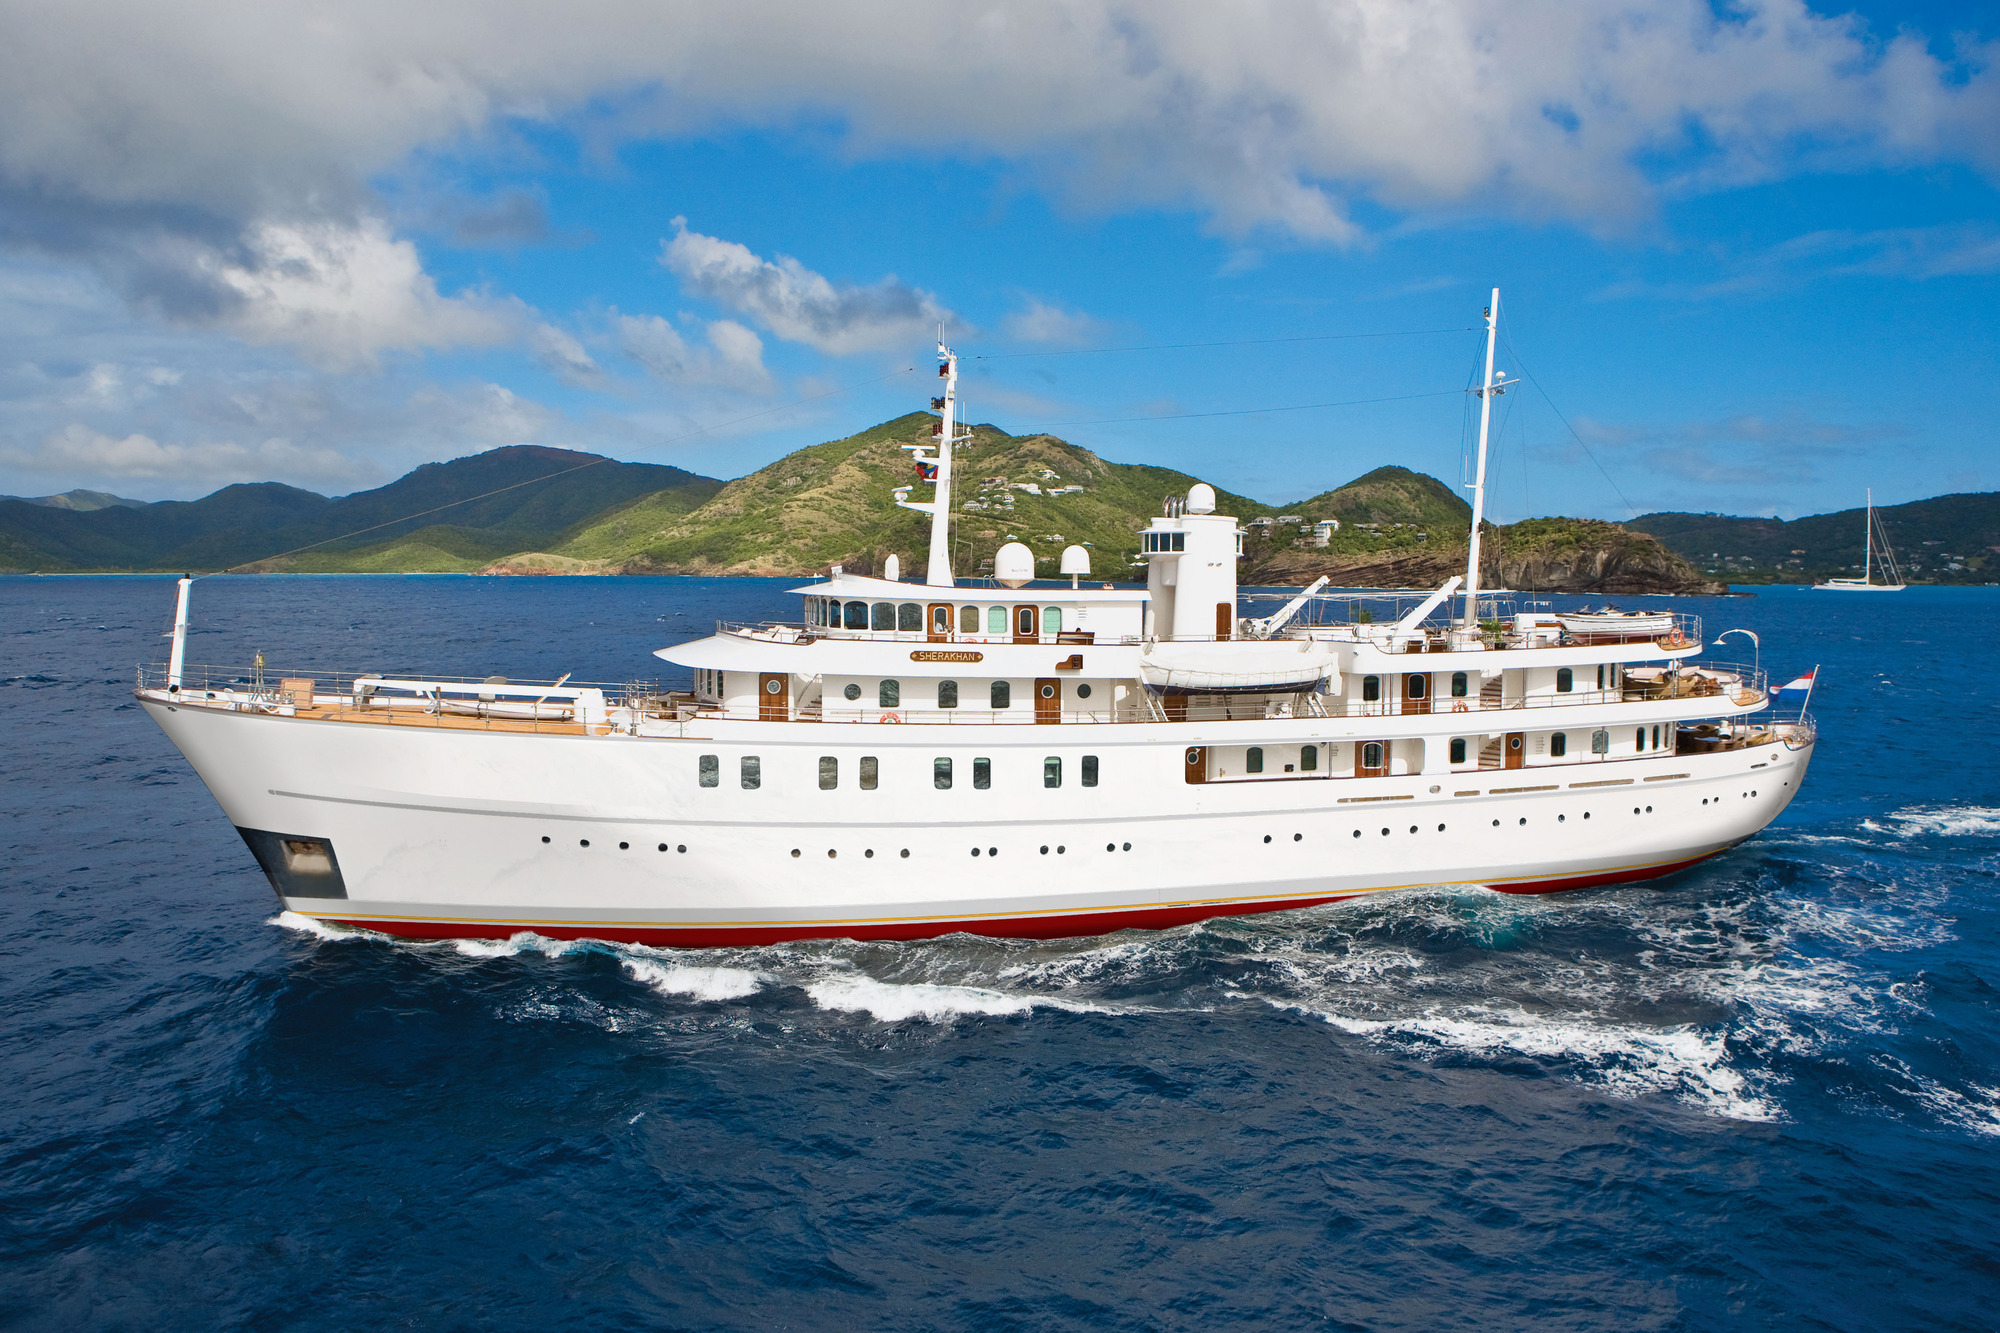 SHERAKHAN motor yacht offering charters for large groups